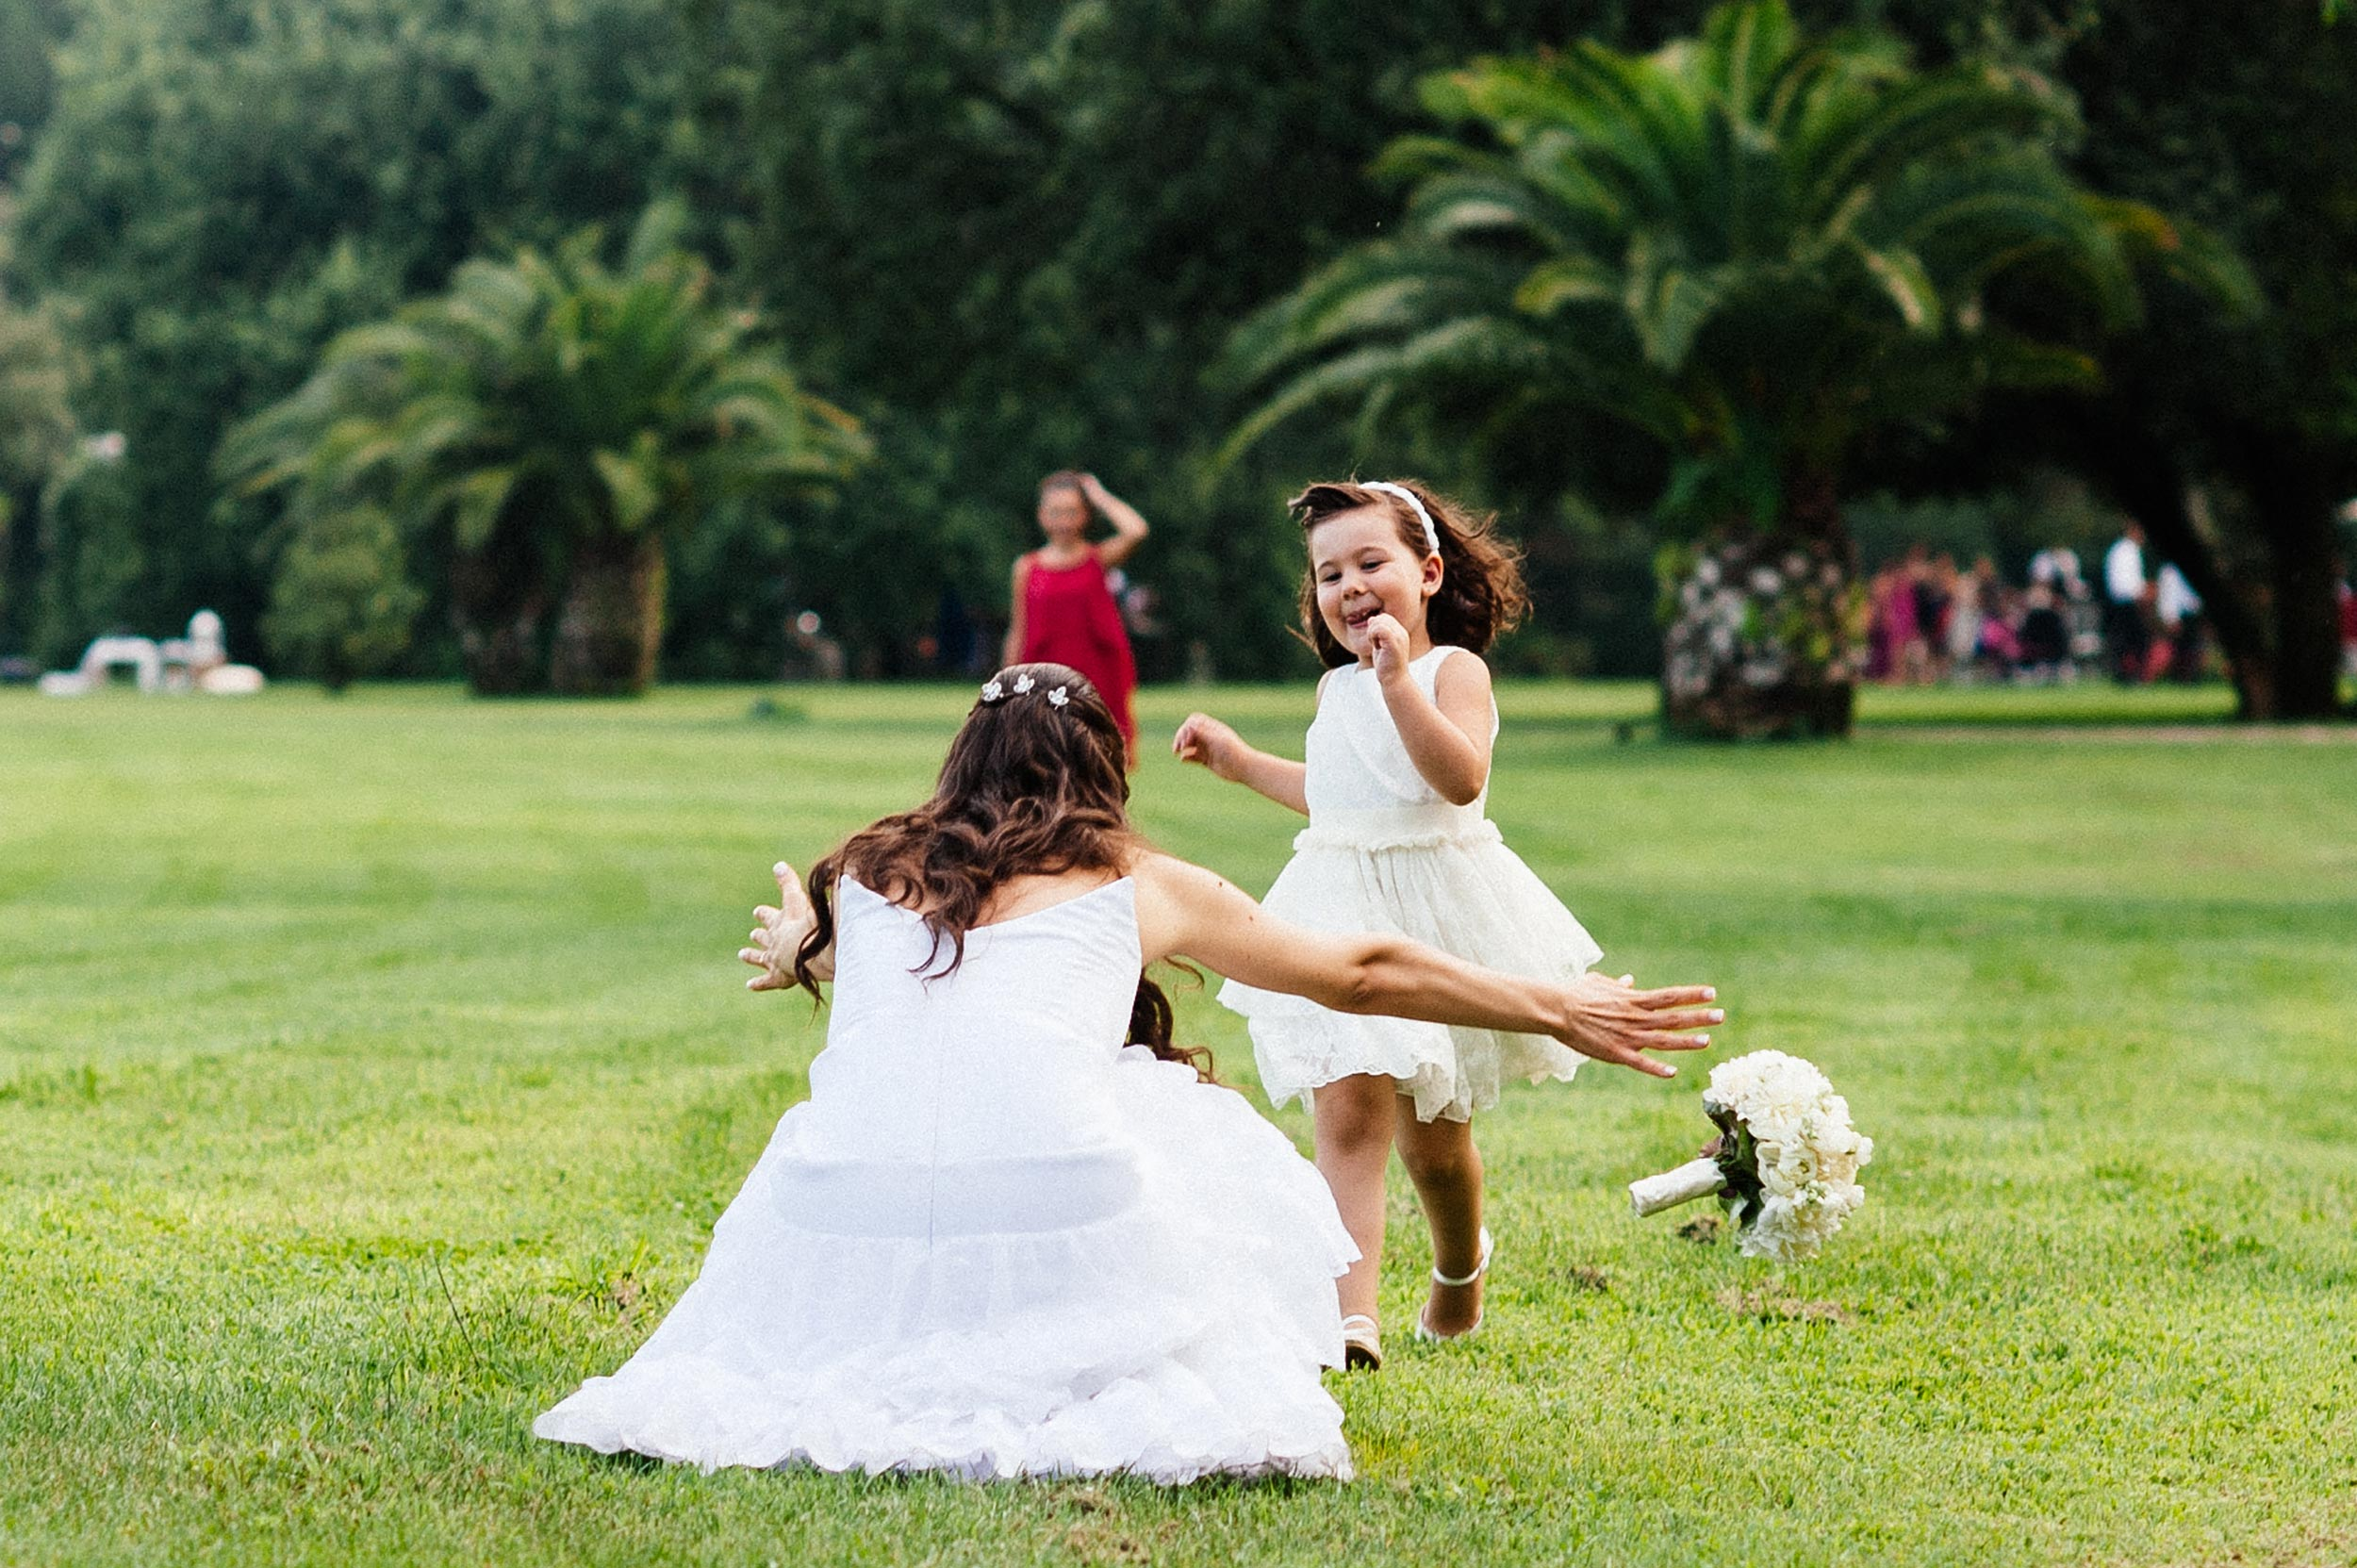 girl-runs-in-front-of-the-bride-and-she-drops-the-bouqut.jpg